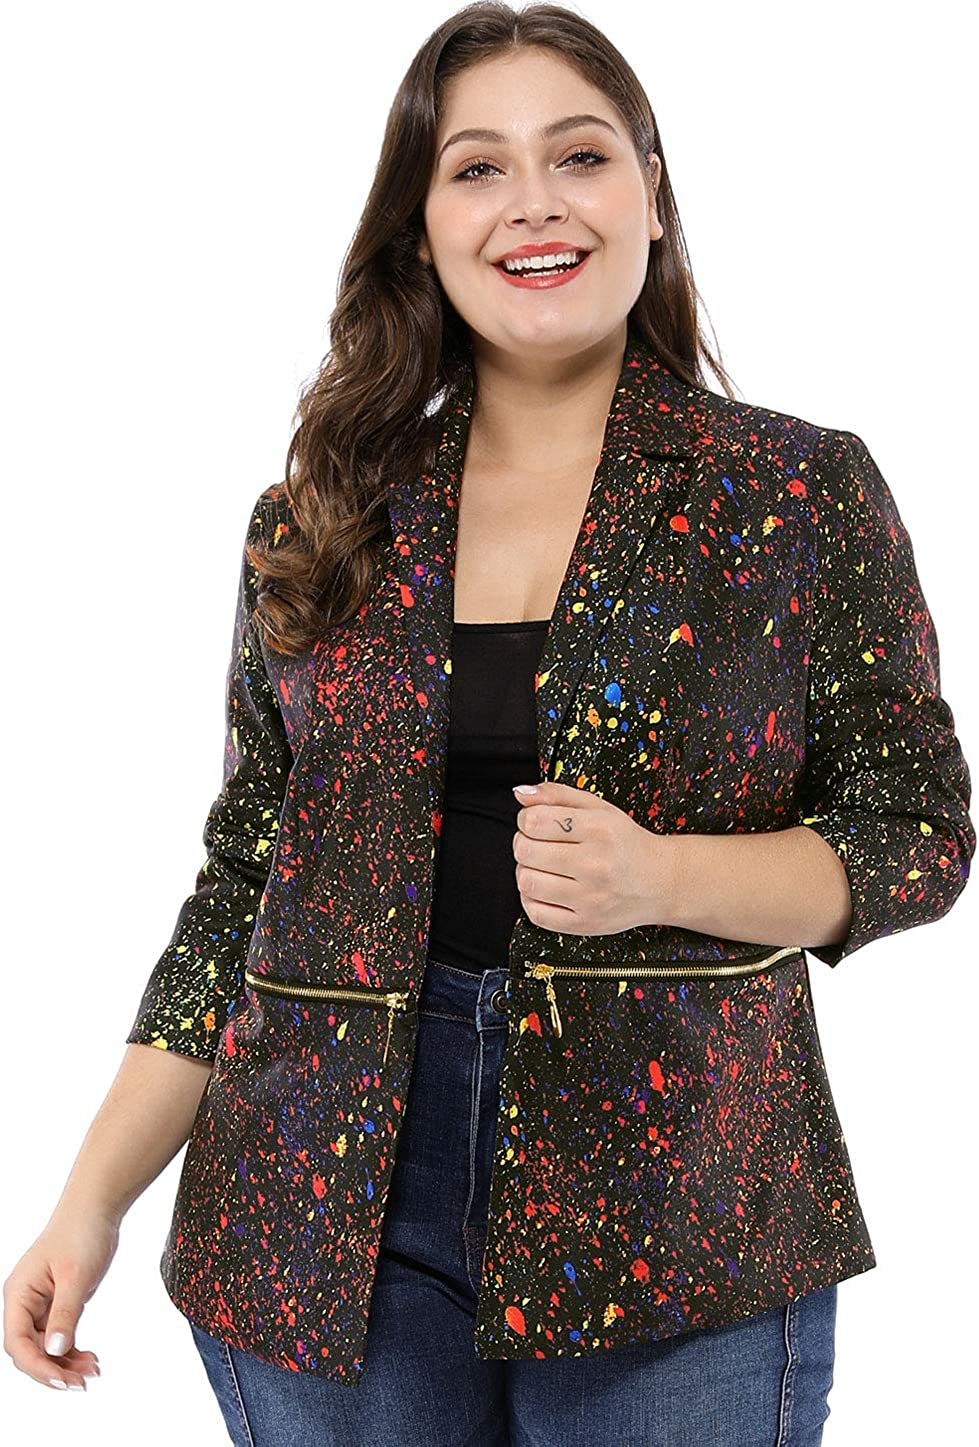 Max 57% OFF uxcell Women's Plus Inexpensive Size Bomber Paint Jackets B Printed Splatter